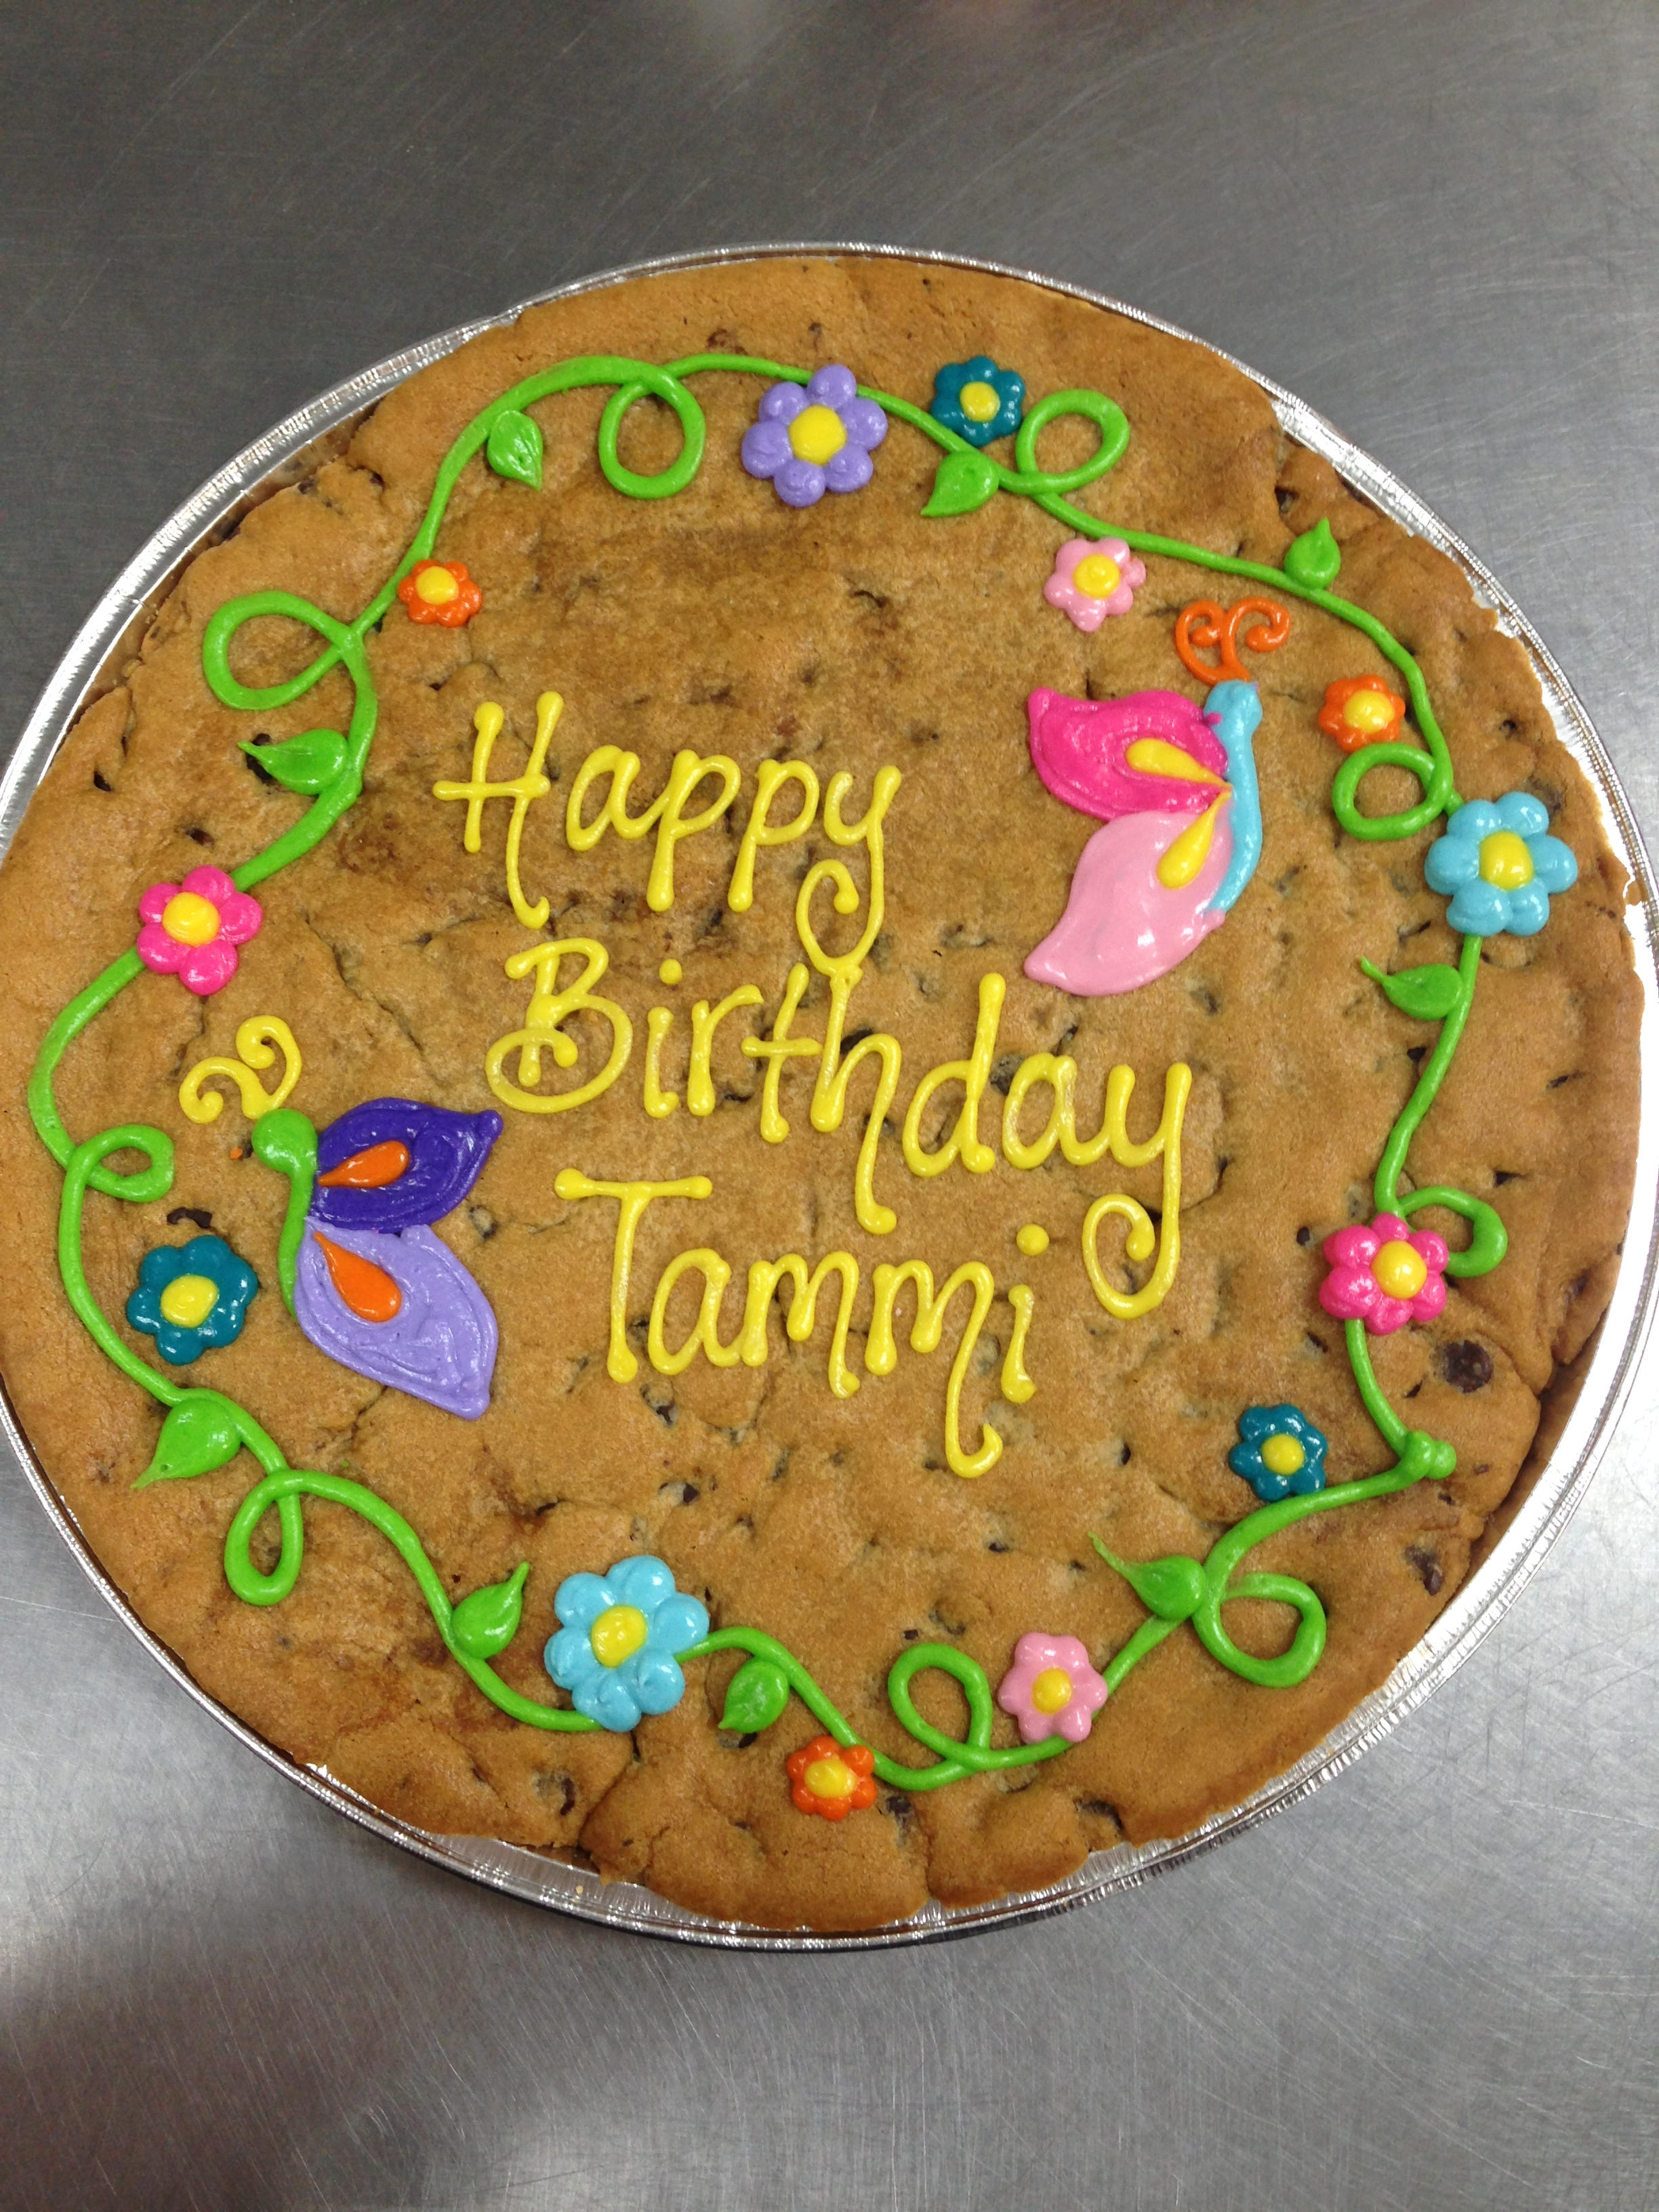 Gourmets Cookie Cakes Cookies By Design Arlington TX